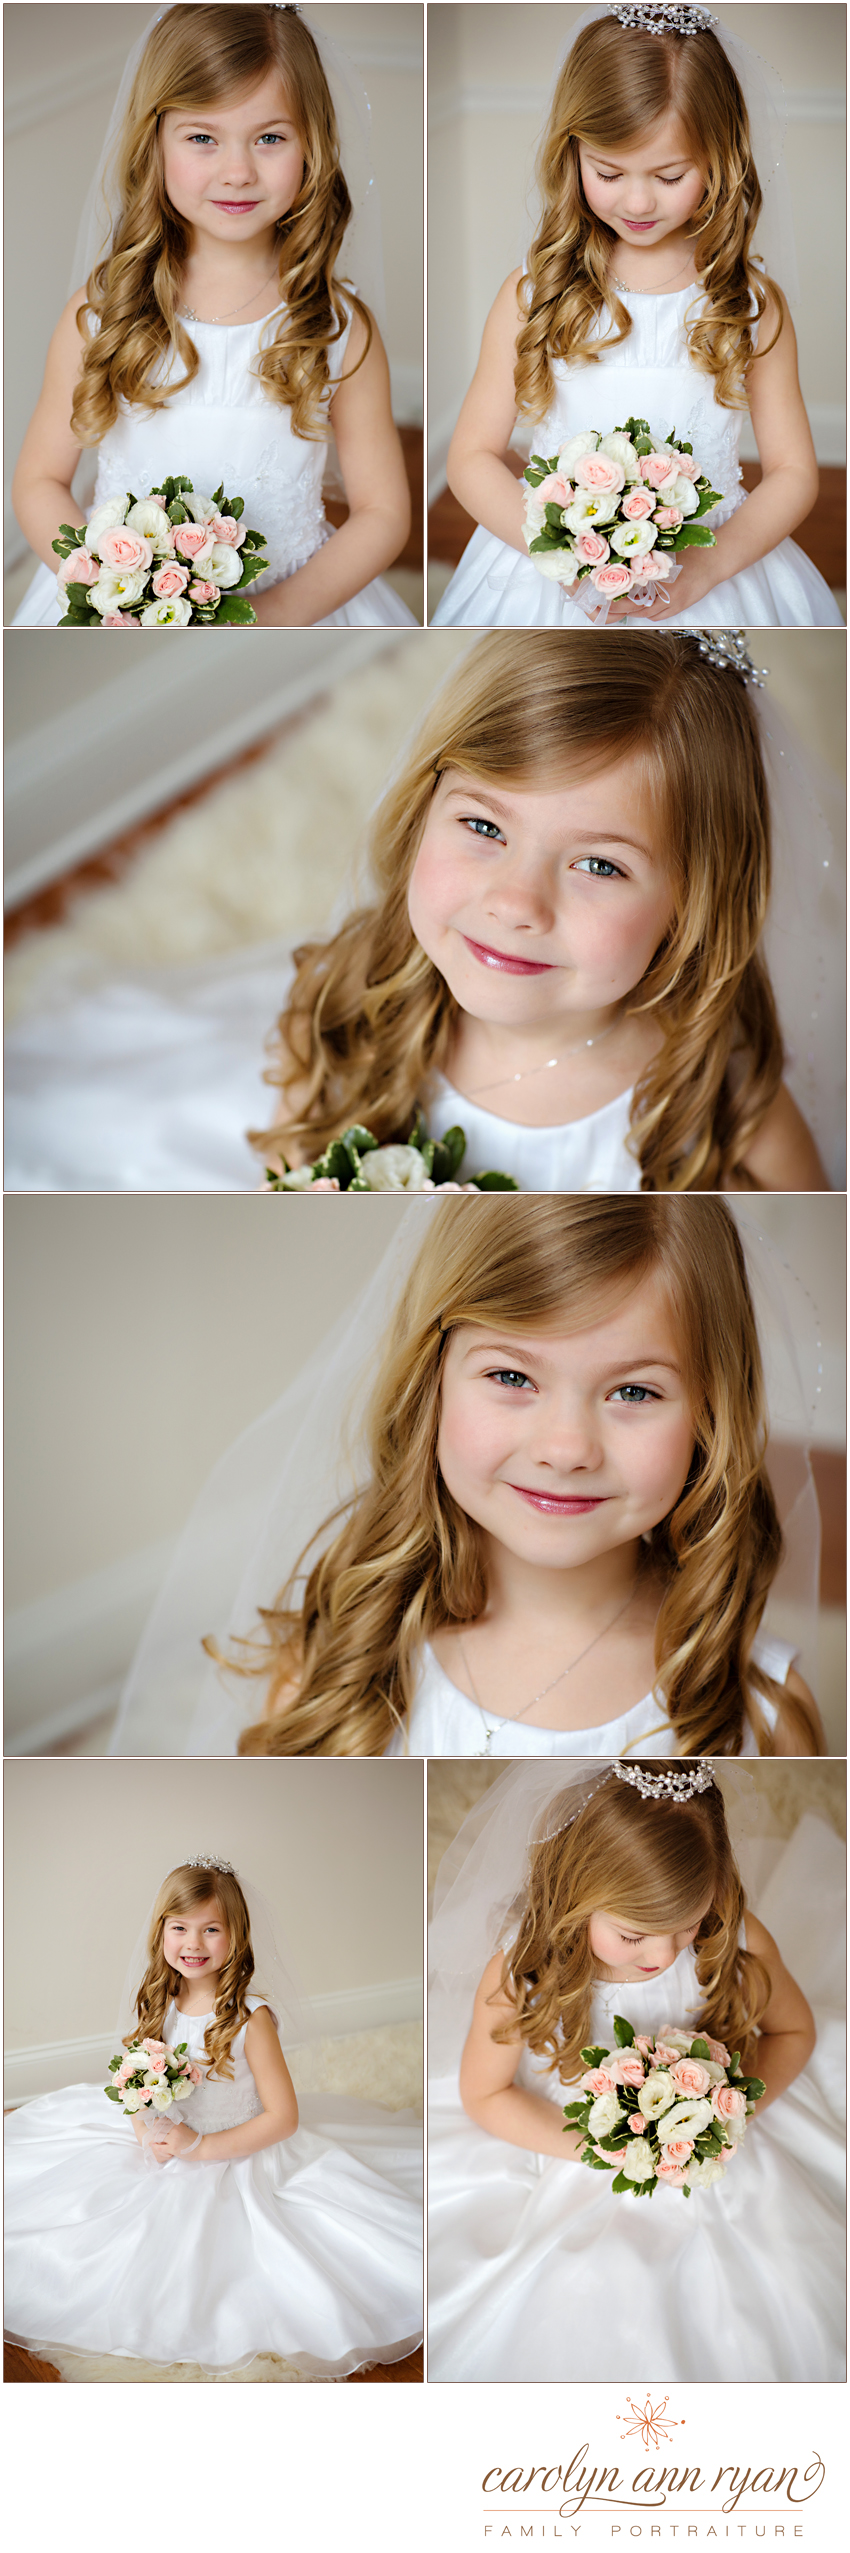 Carolyn Ann Ryan photographs 8 year old for communion pictures in Westfield NJ studio